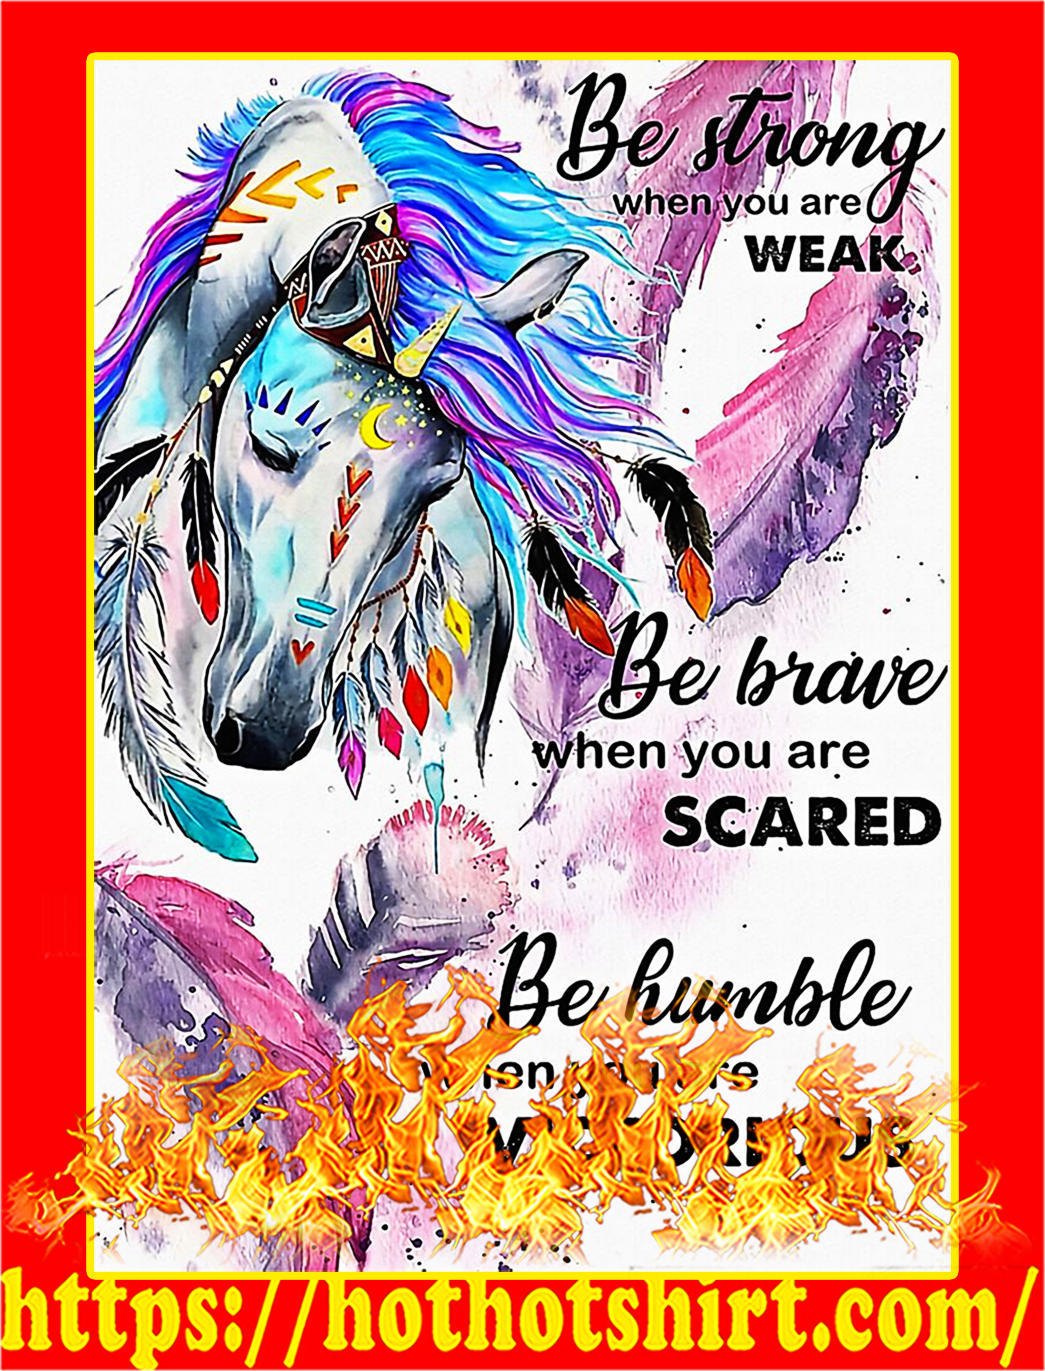 Horse girl be strong when you are weak poster - A1